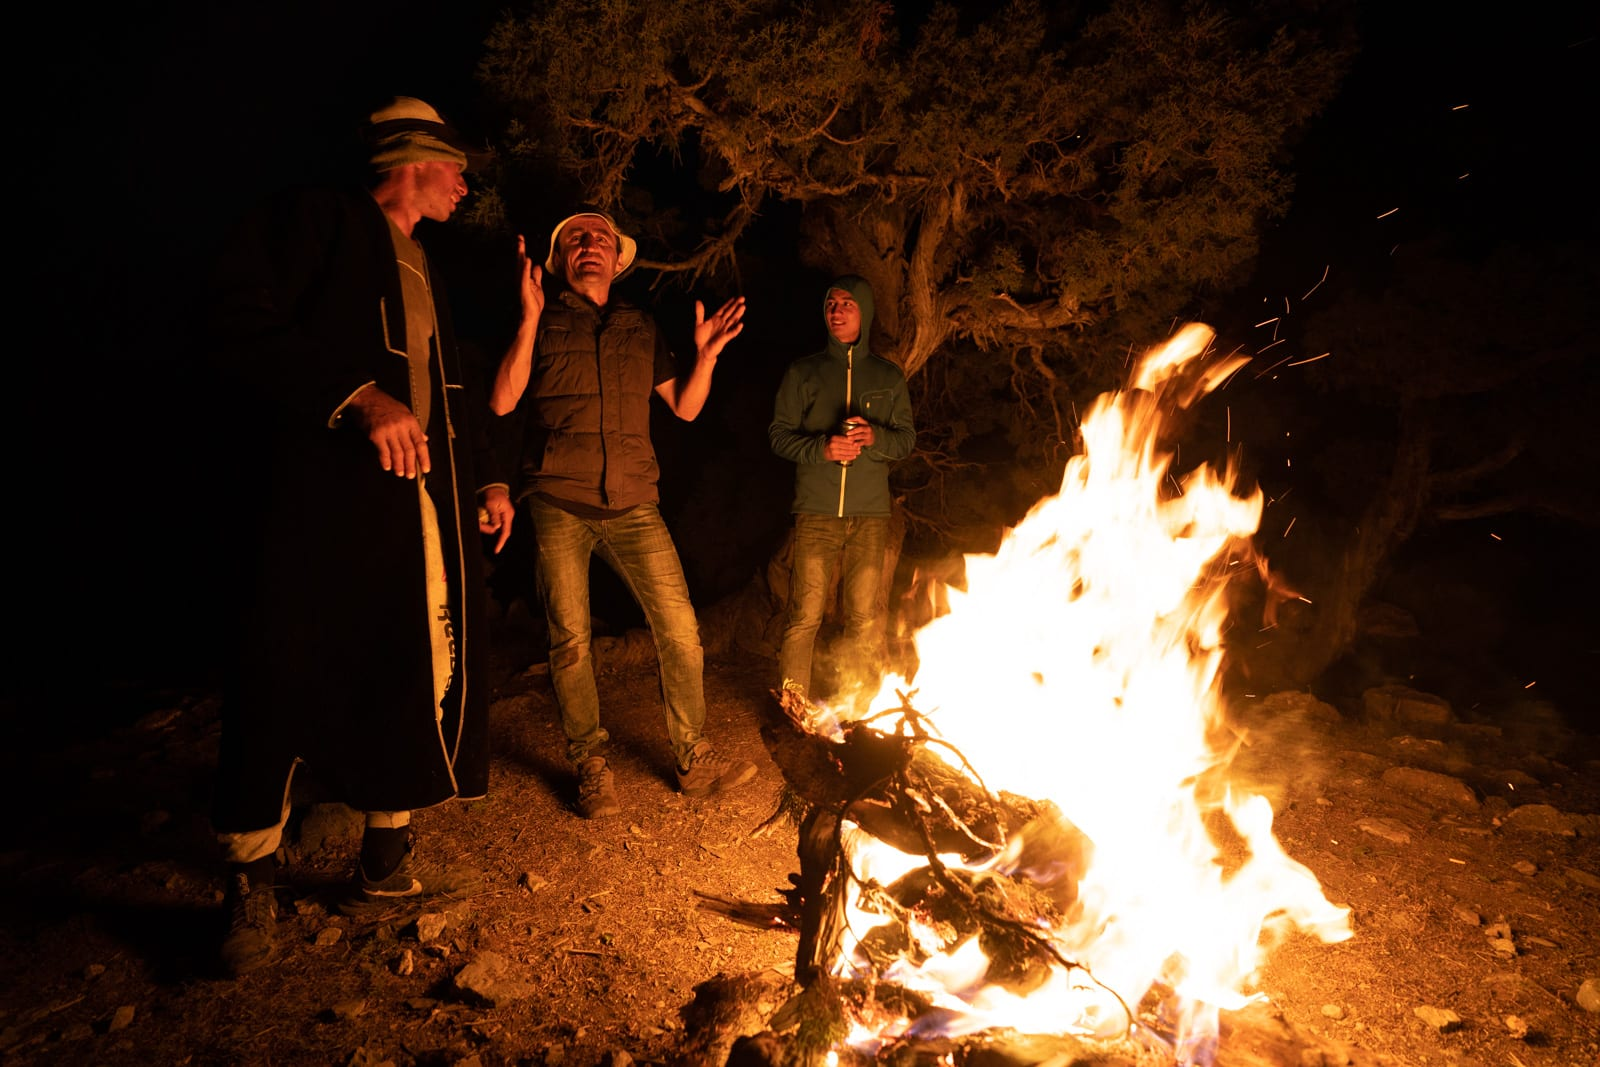 Men singing around a campfire in Western Tajikistan